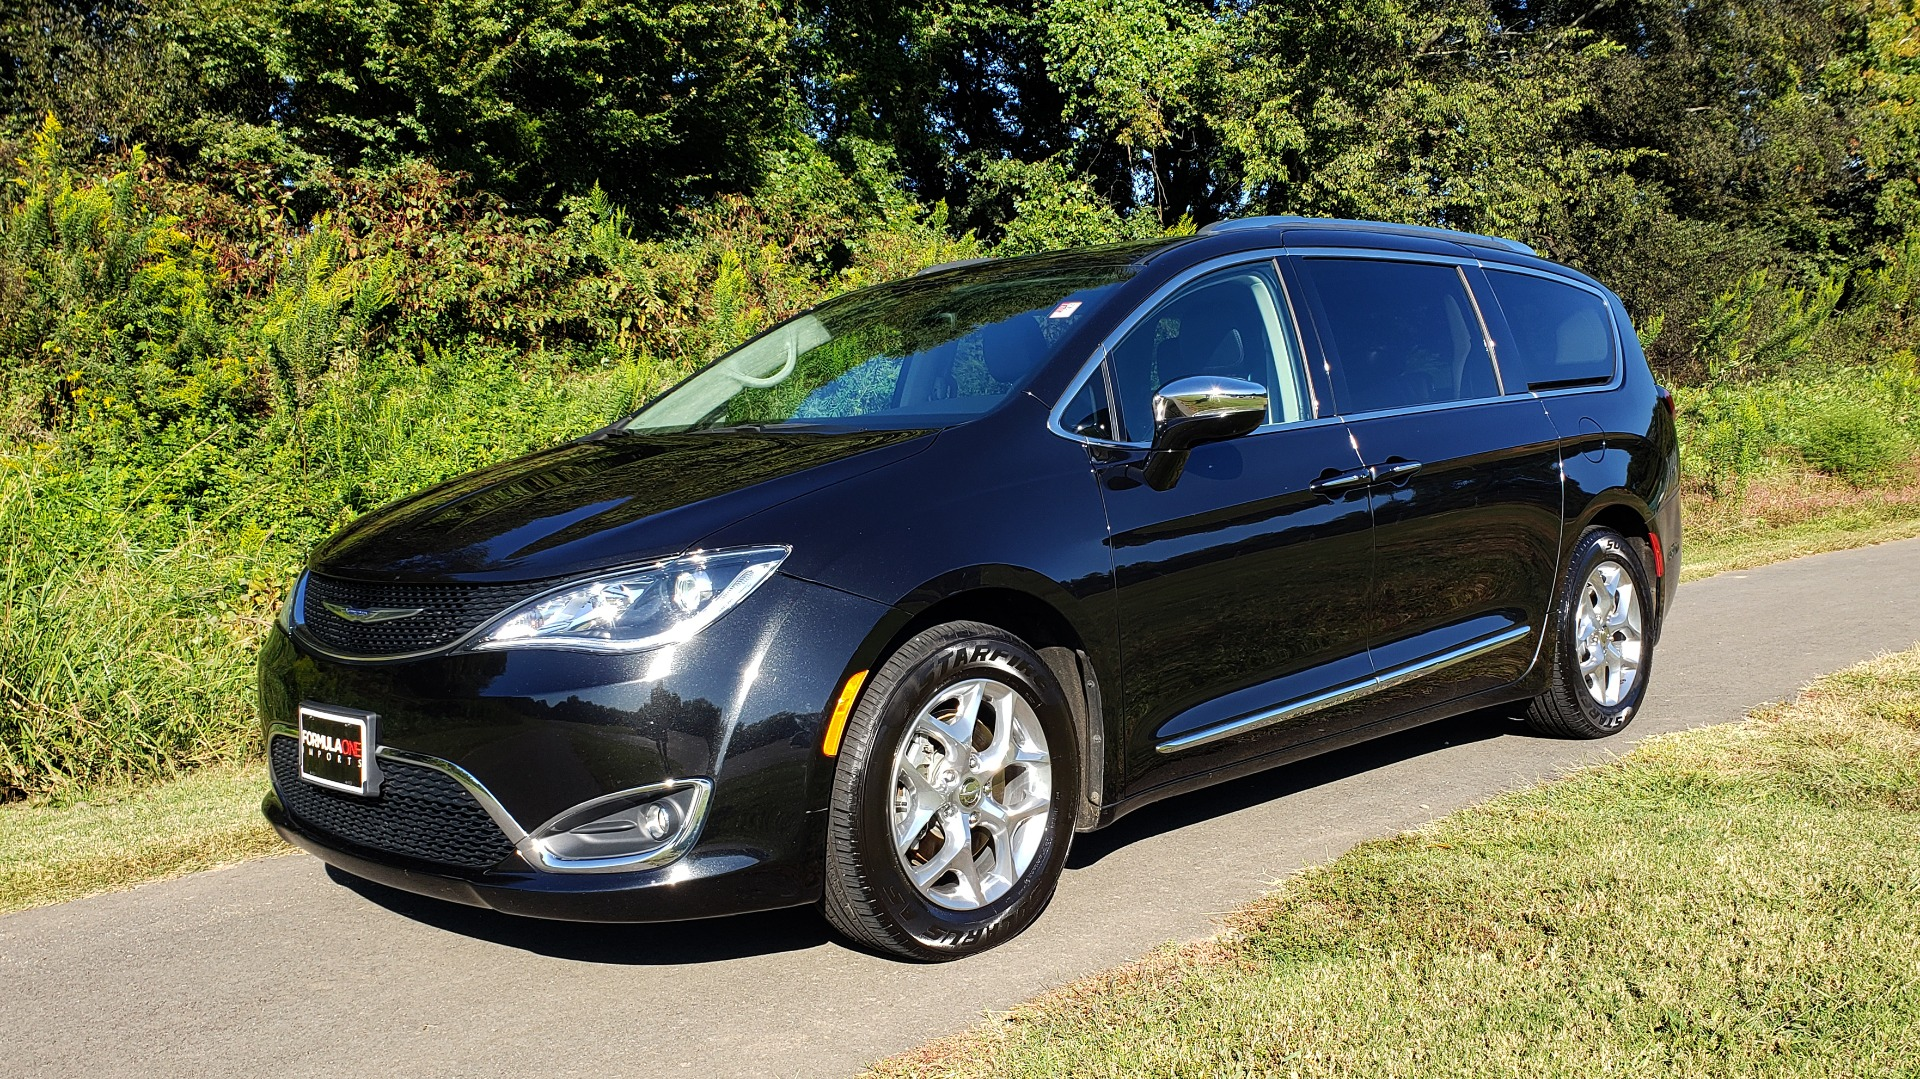 Used 2018 Chrysler PACIFICA LIMITED / 3.6L V6 / NAV / PANO-ROOF / 3-ROWS / REARVIEW for sale Sold at Formula Imports in Charlotte NC 28227 3